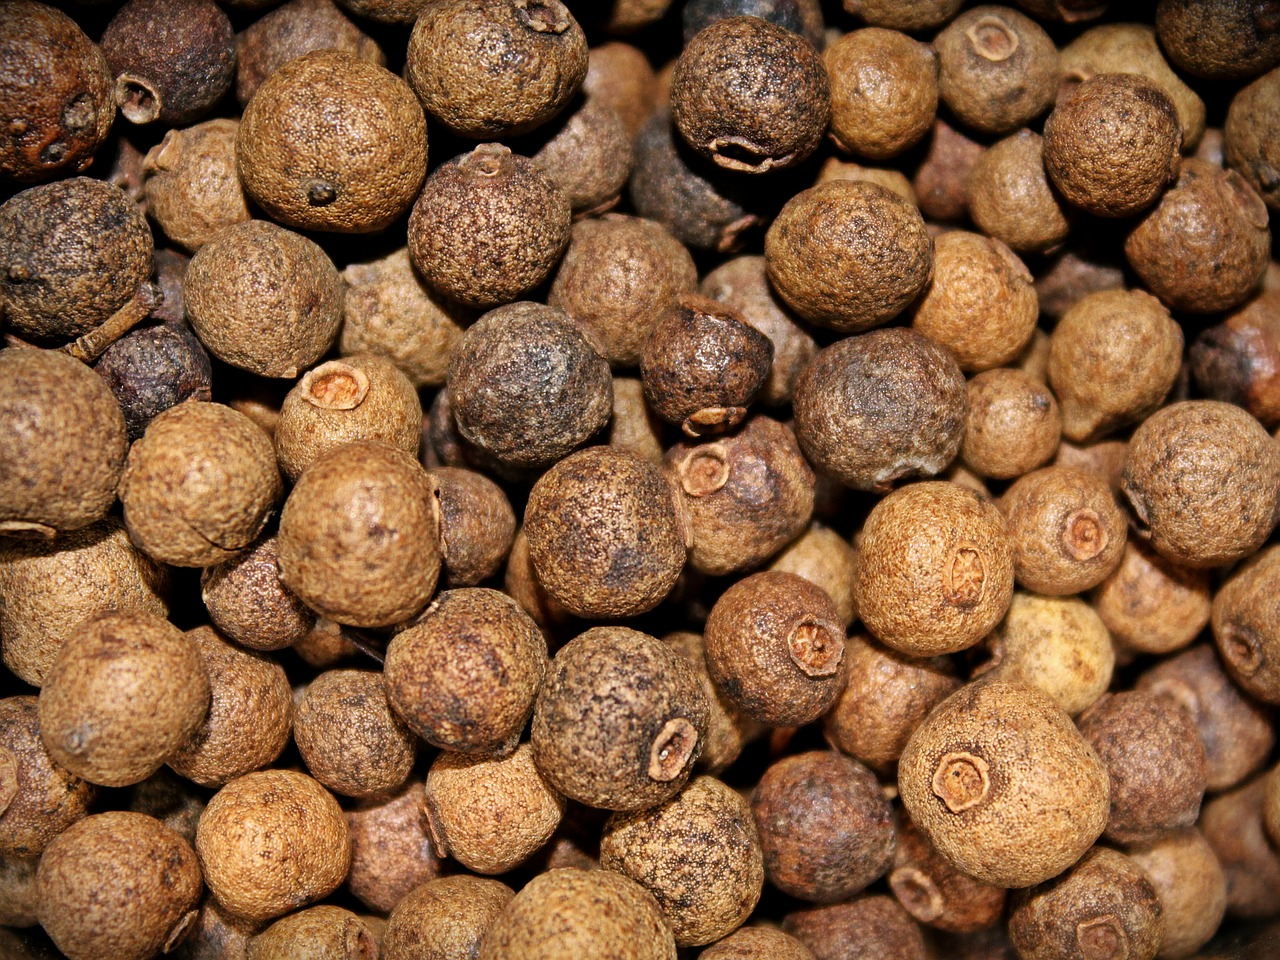 The Health Benefits of Allspice (Pimenta dioica) to Skin & Hair